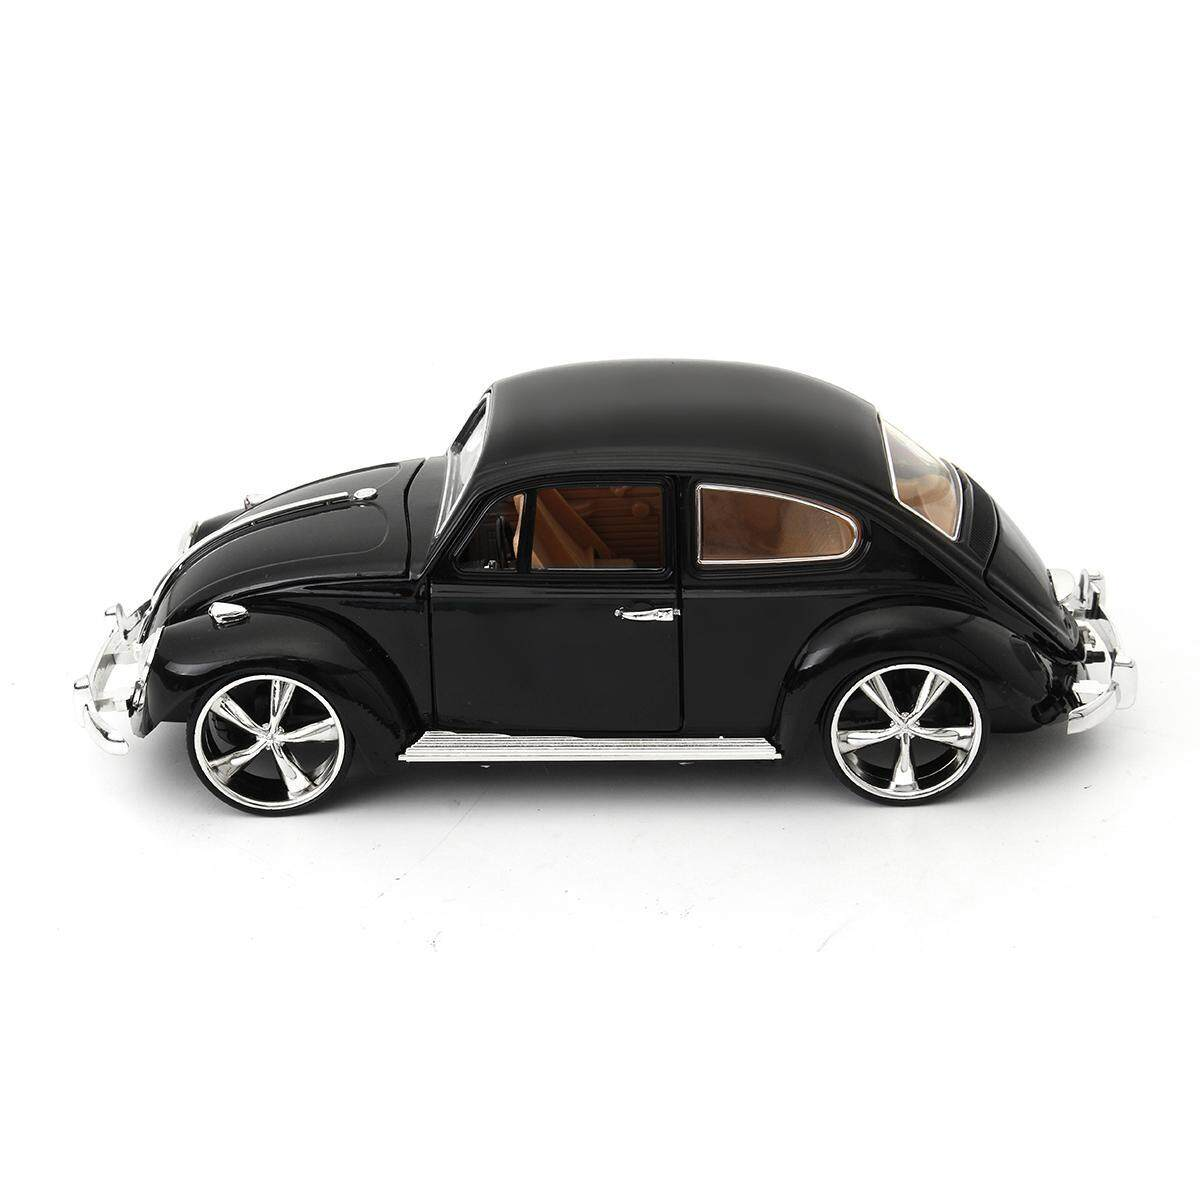 1:18 Black Volkswagen Beetle Superior 1967 Diecast Model Car Toy Gift Collection